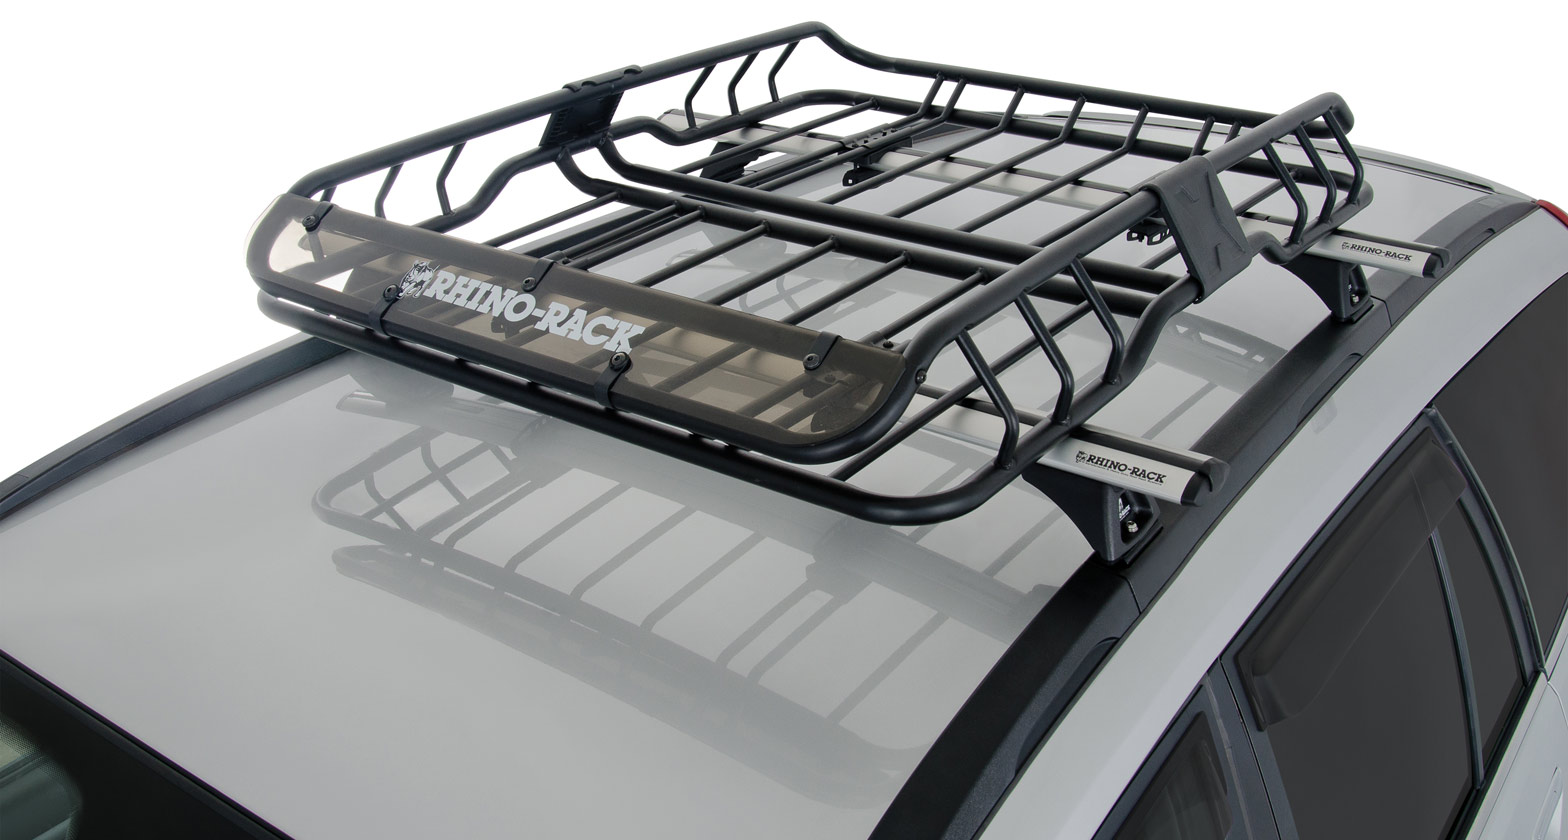 Xtray Small rmcb01 further Yakima Universal Roof Rack as well Racks likewise RMCB01 Rhino Rack Small XTray 47x35x8 besides Xtray Bracket For Stealthbar 43216. on xtray small rmcb01